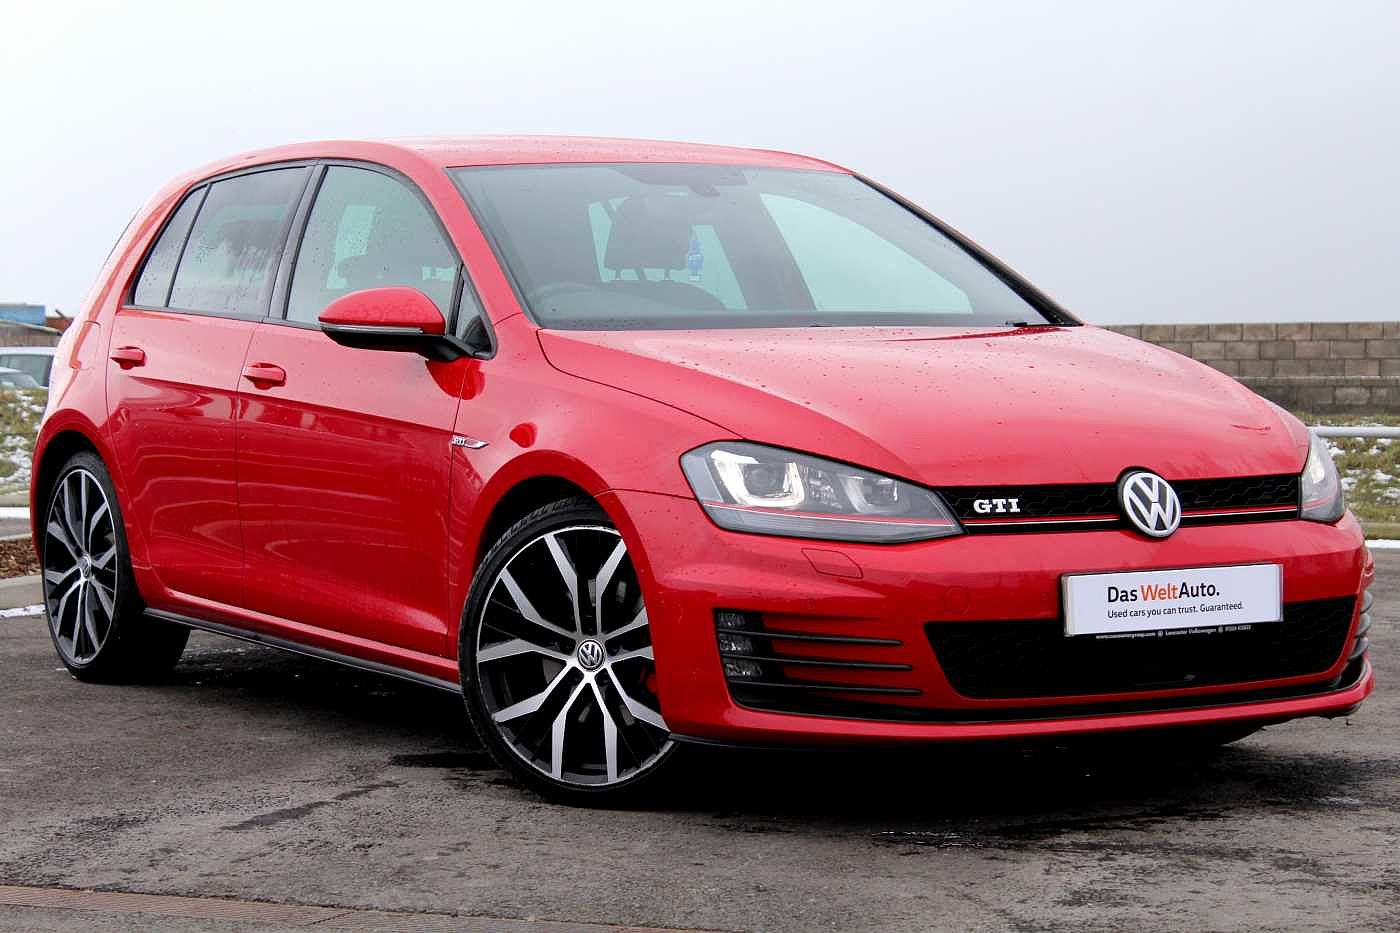 Volkswagen Golf 2.0 TSI GTI 220PS 5Dr